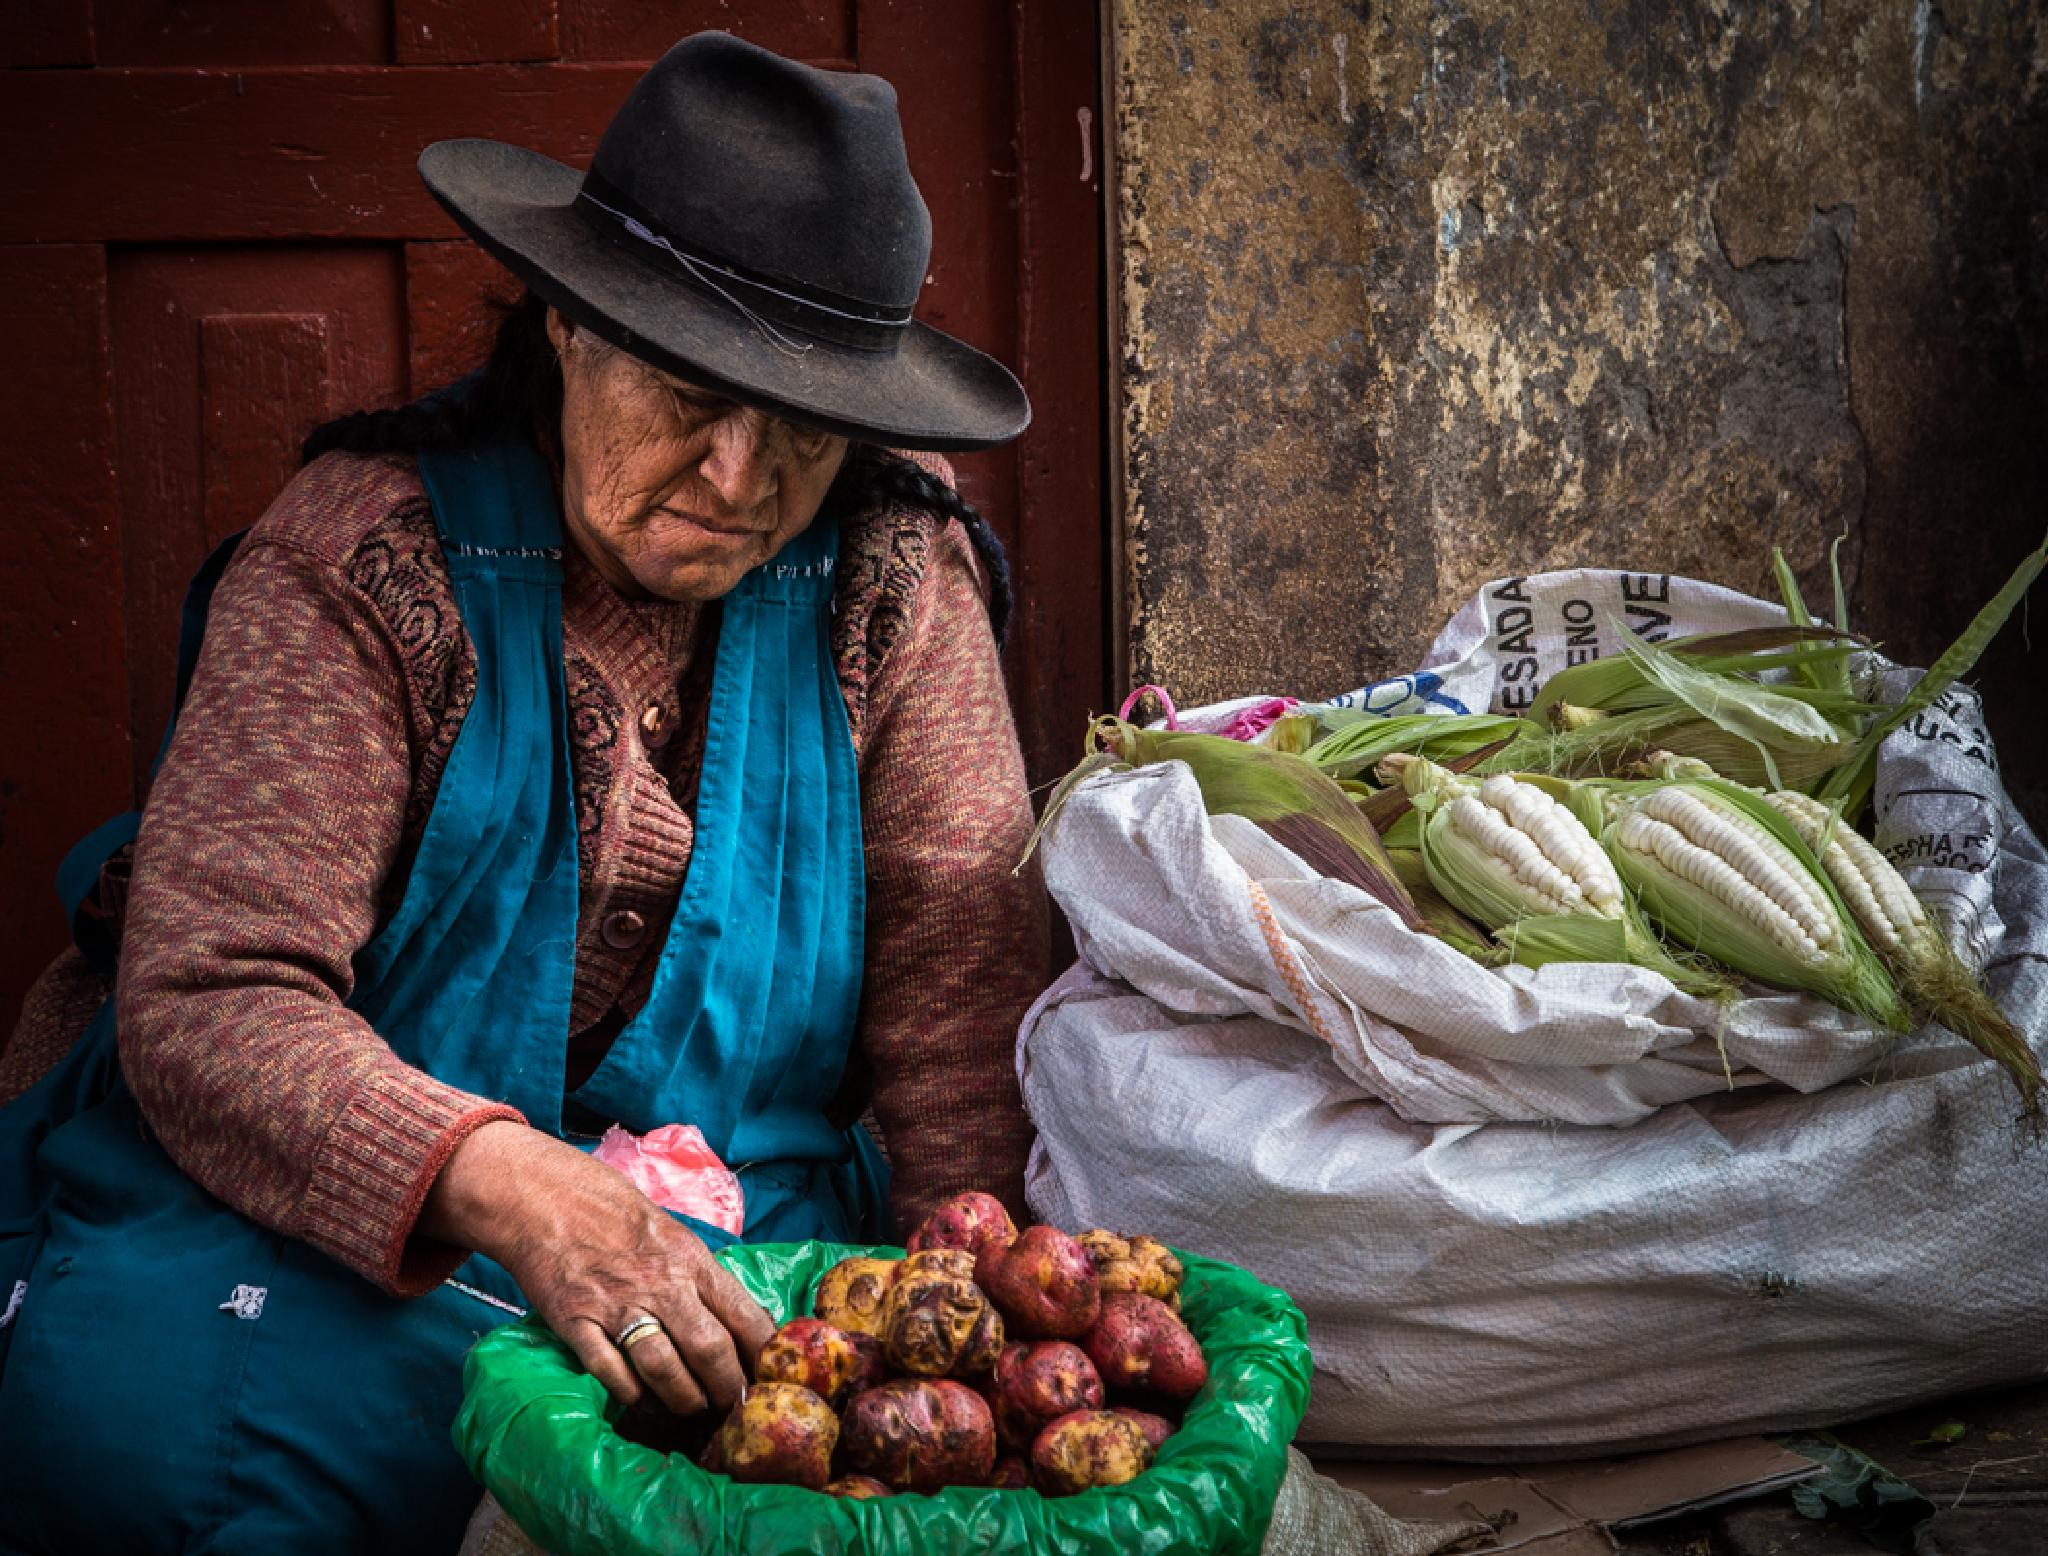 The old lady at the market of Chinchero. by sergeferland123